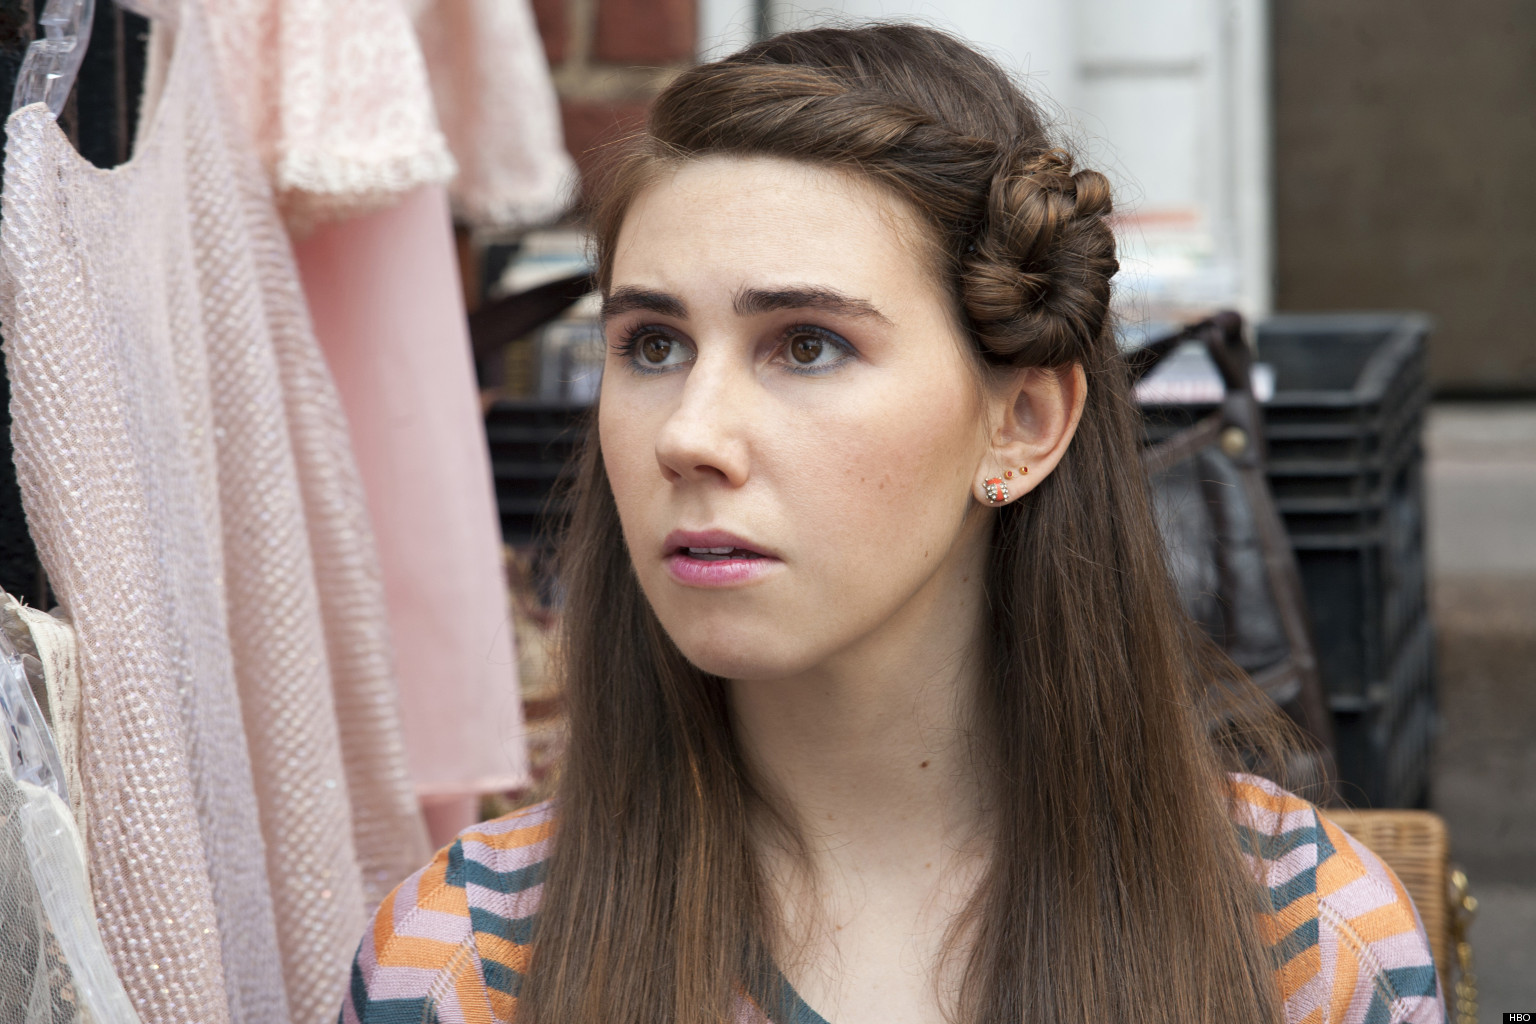 zosia mamet net worthzosia mamet interview, zosia mamet husband, zosia mamet name, zosia mamet twitter, zosia mamet & evan jonigkeit, zosia mamet wiki, zosia mamet instagram, zosia mamet wedding, zosia mamet style, zosia mamet patti smith, zosia mamet, зося мамет, zosia mamet imdb, zosia mamet net worth, zosia mamet singing, zosia mamet tumblr, zosia mamet zimbio, zosia mamet feet, zosia mamet polish, zosia mamet tattoos